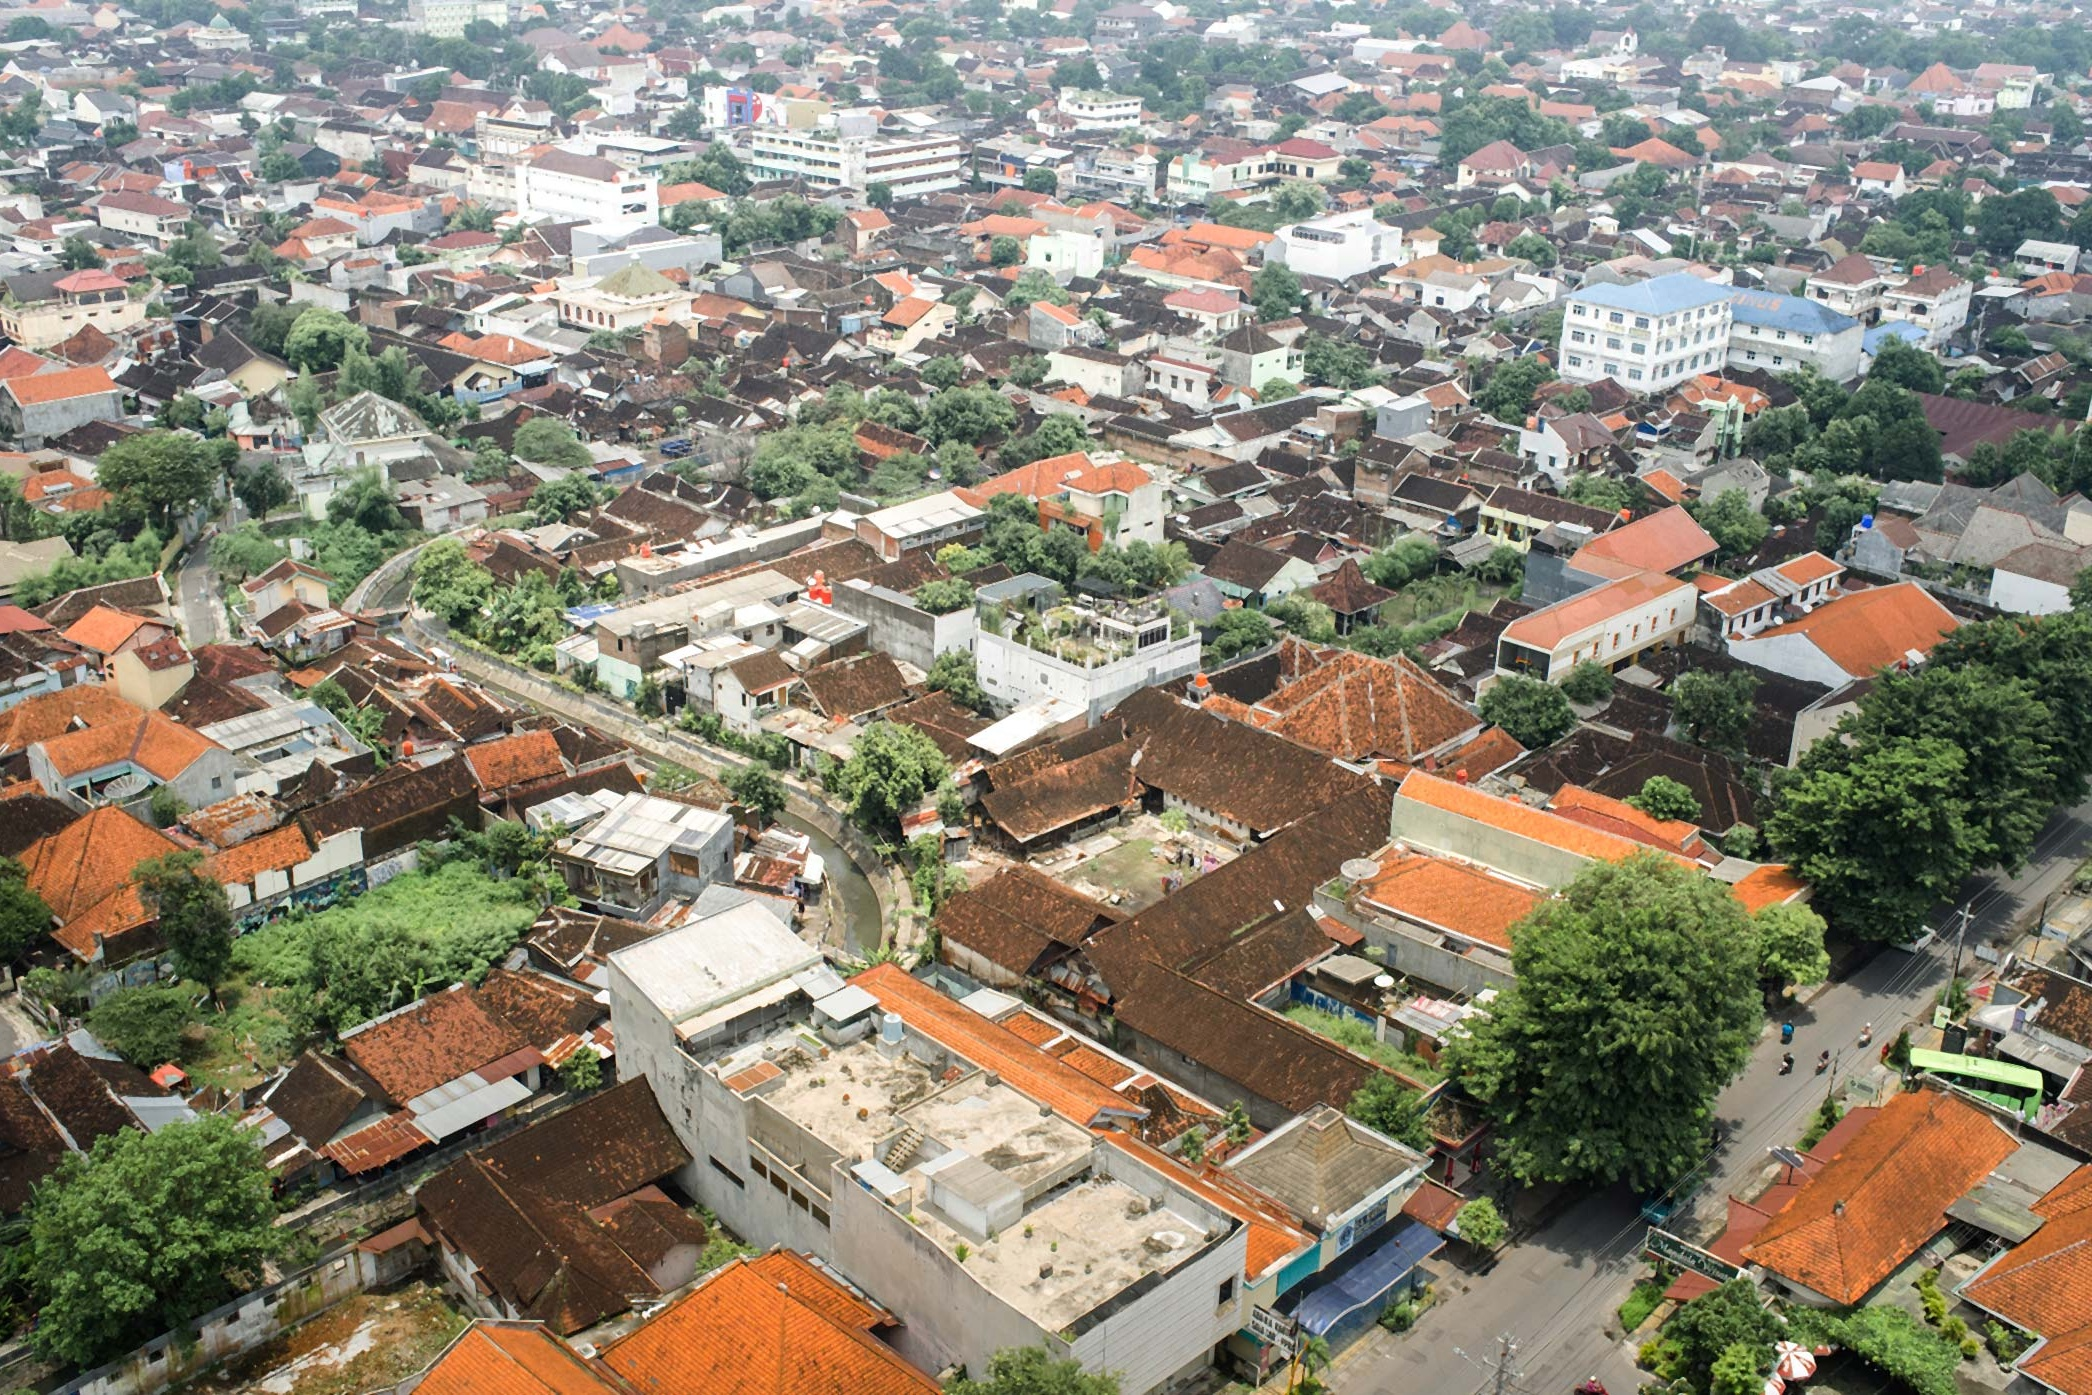 View over the orange rooftops of Surakarta from my hotel.